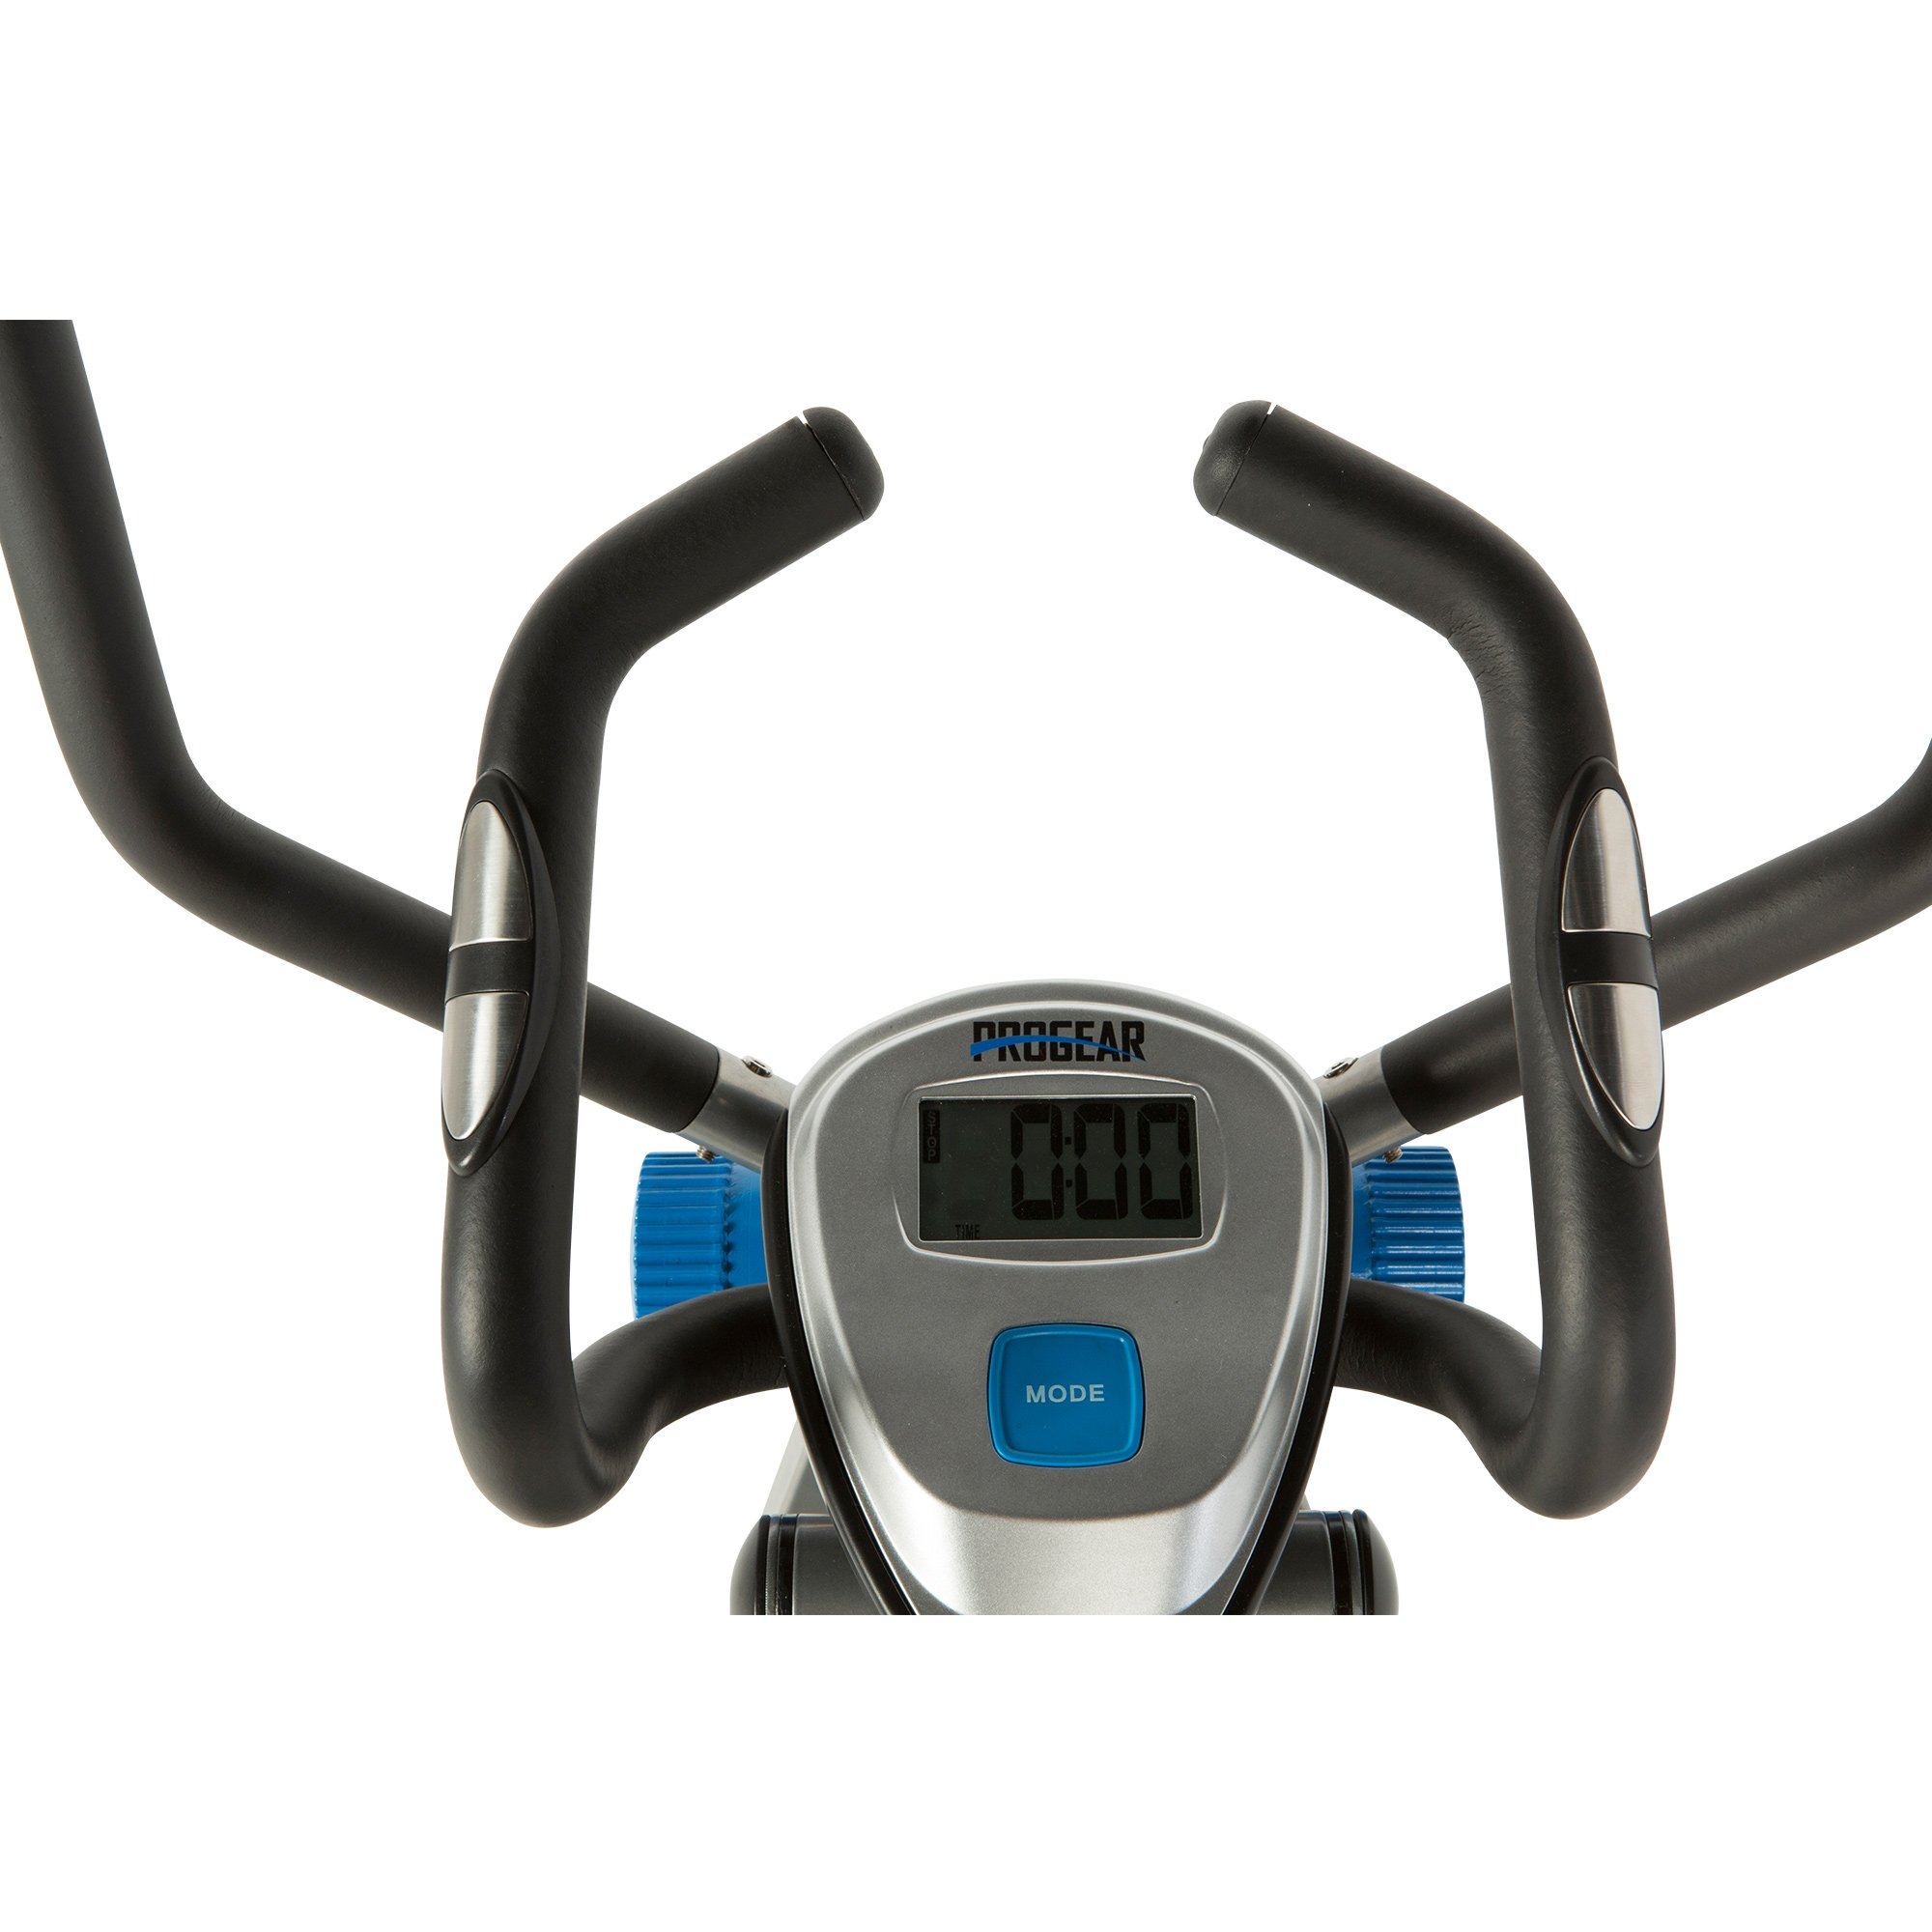 PROGEAR Dual Action 360 Multi Direction 36'' Stride Air Walker LS with Heart Pulse Sensors by ProGear (Image #3)